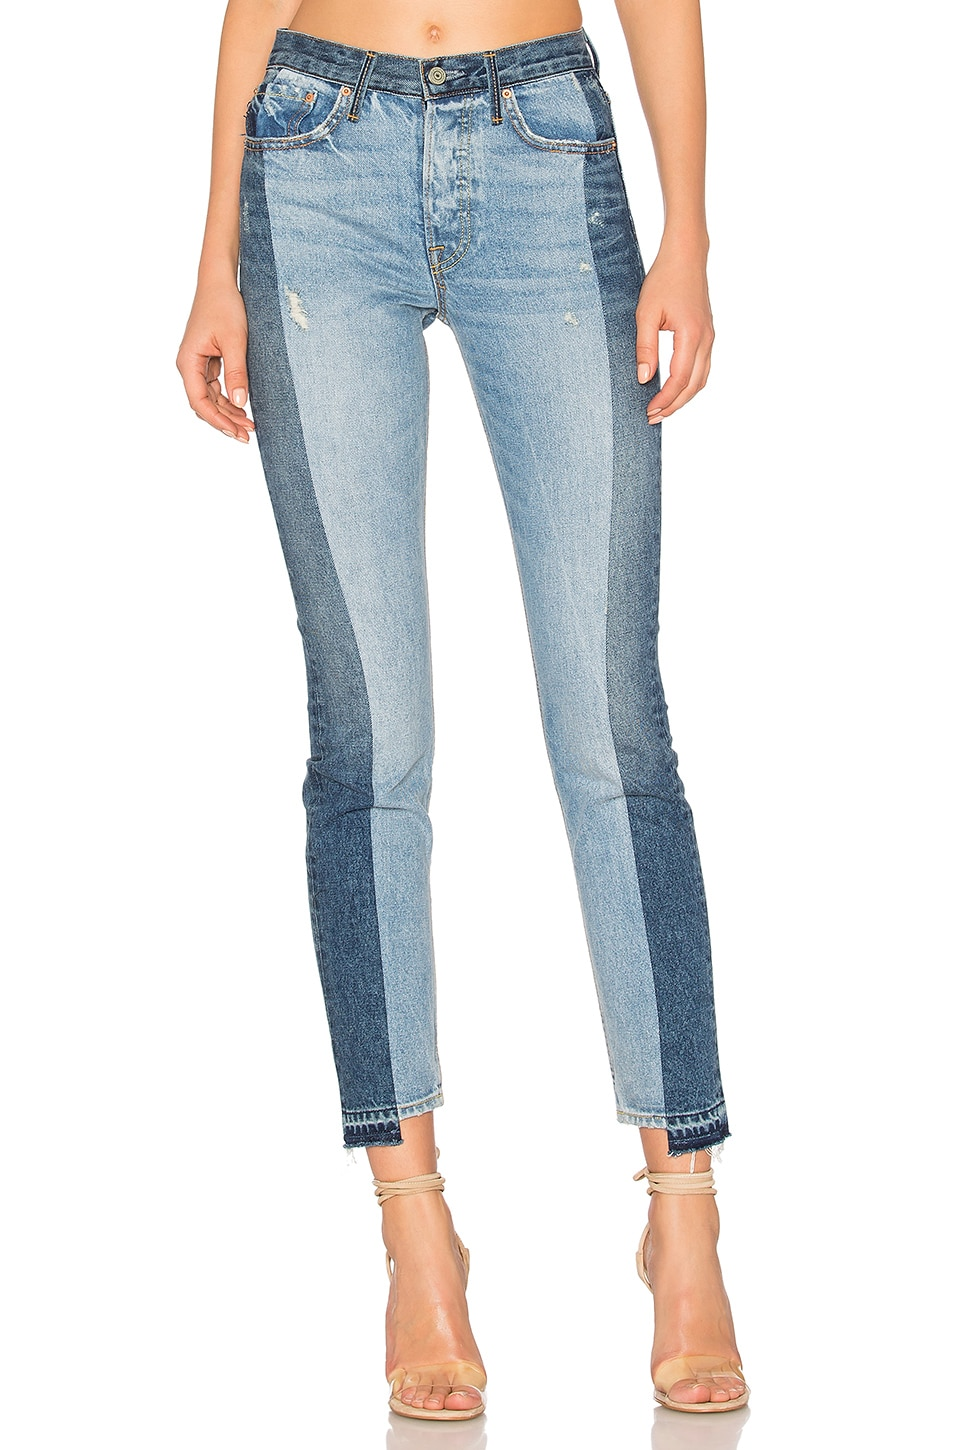 GRLFRND Karolina High-Rise Skinny Jean in Thunder Road